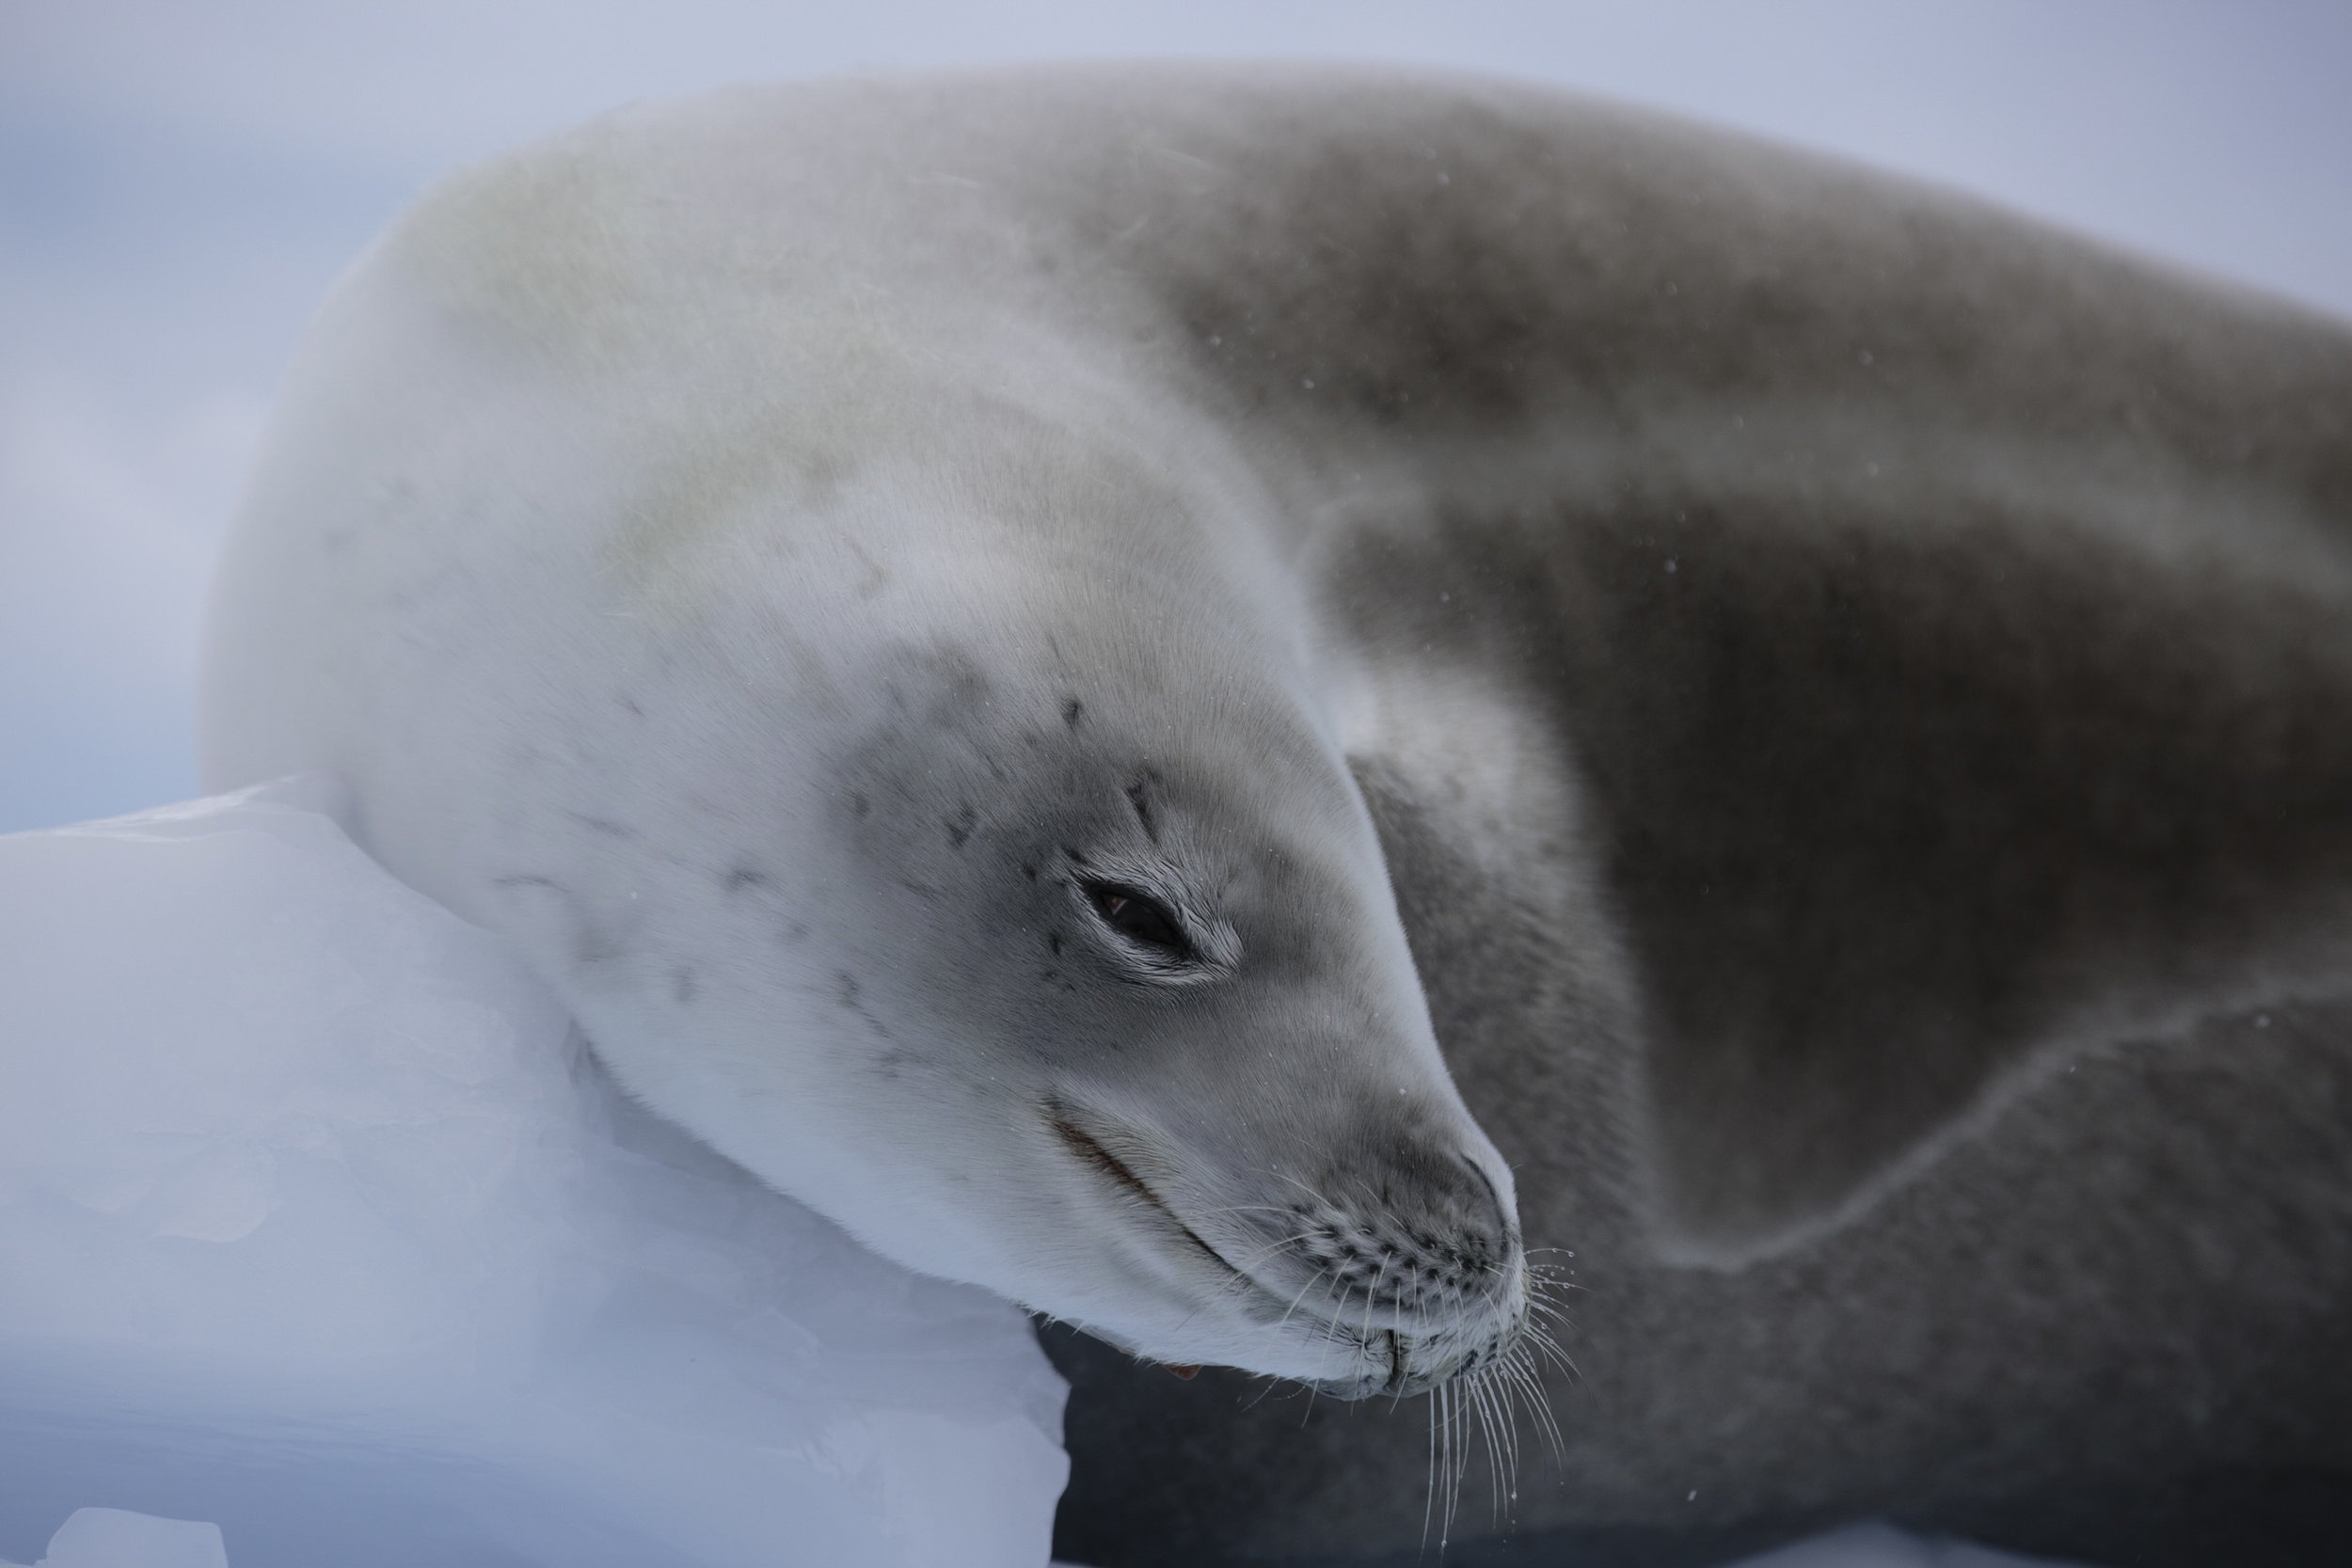 A crab eater seal dries out on some sea ice looking quite warm and cozy.